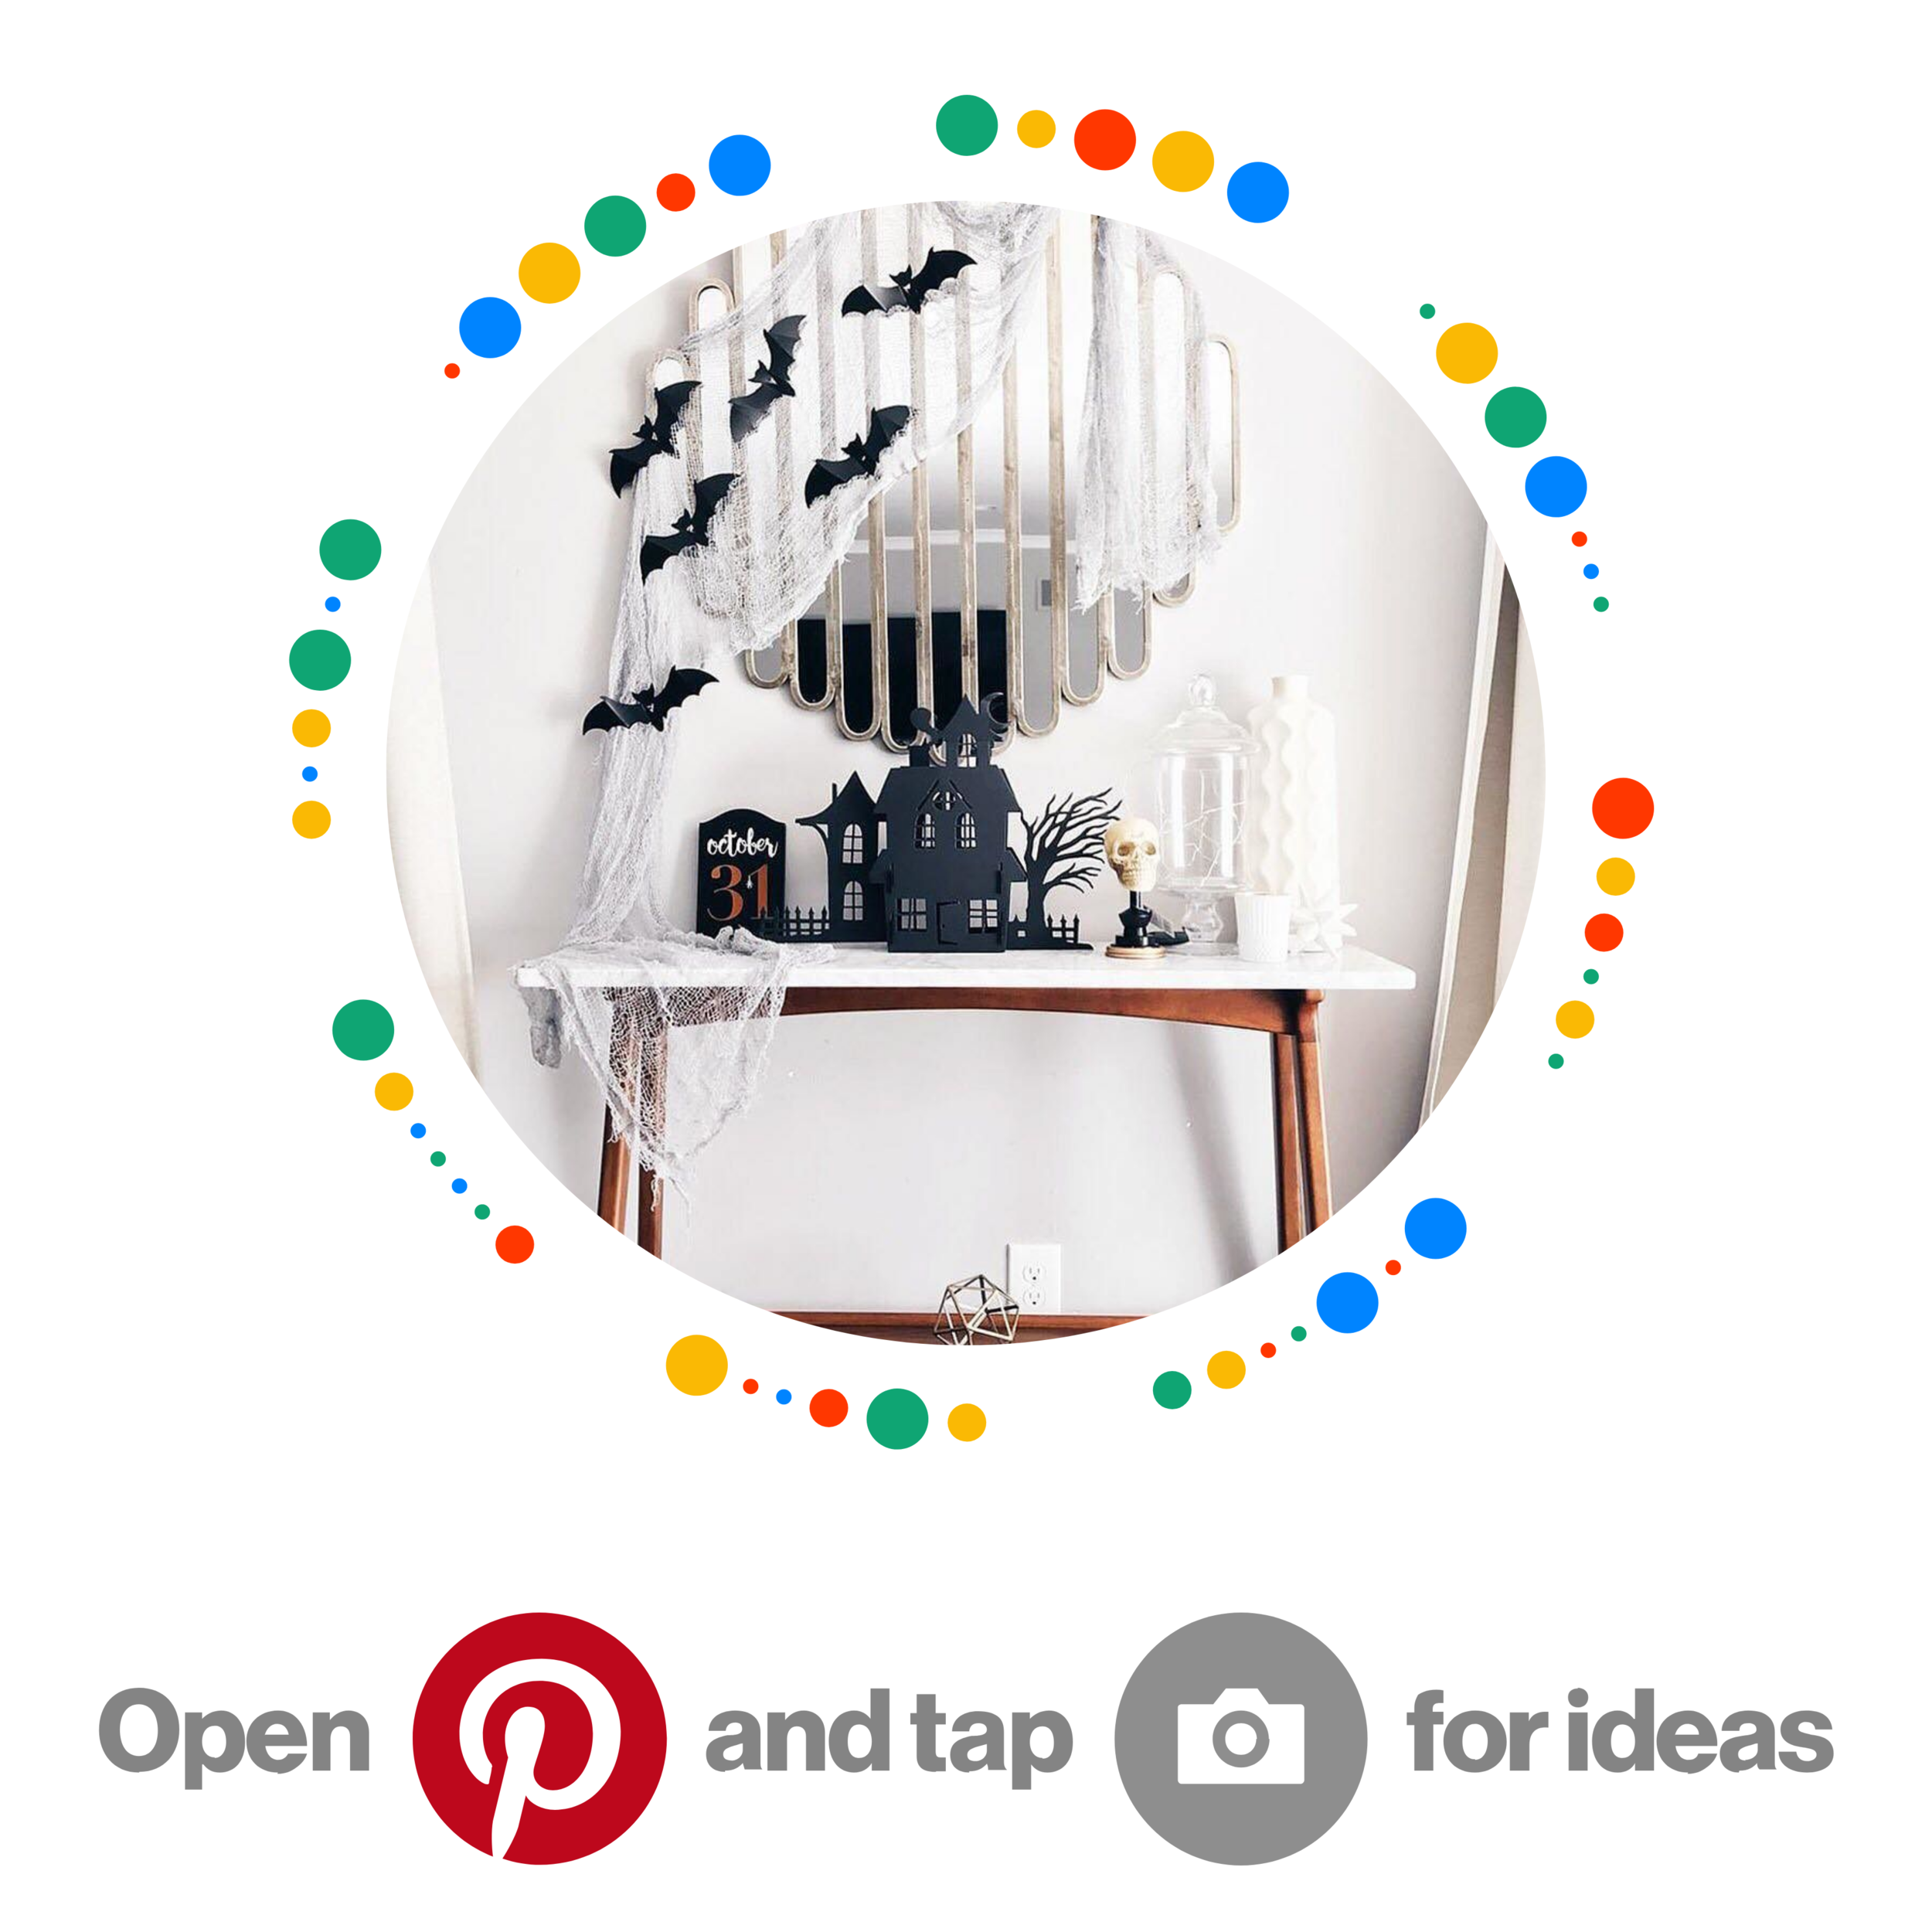 Follow us on Pinterest! - For more Halloween hosting and DIY ideas —> @lazboycomfortstudioOpen up your camera on the Pinterest app and hover over the Pincode you see here! It will take you directly to our Halloween-inspired board.